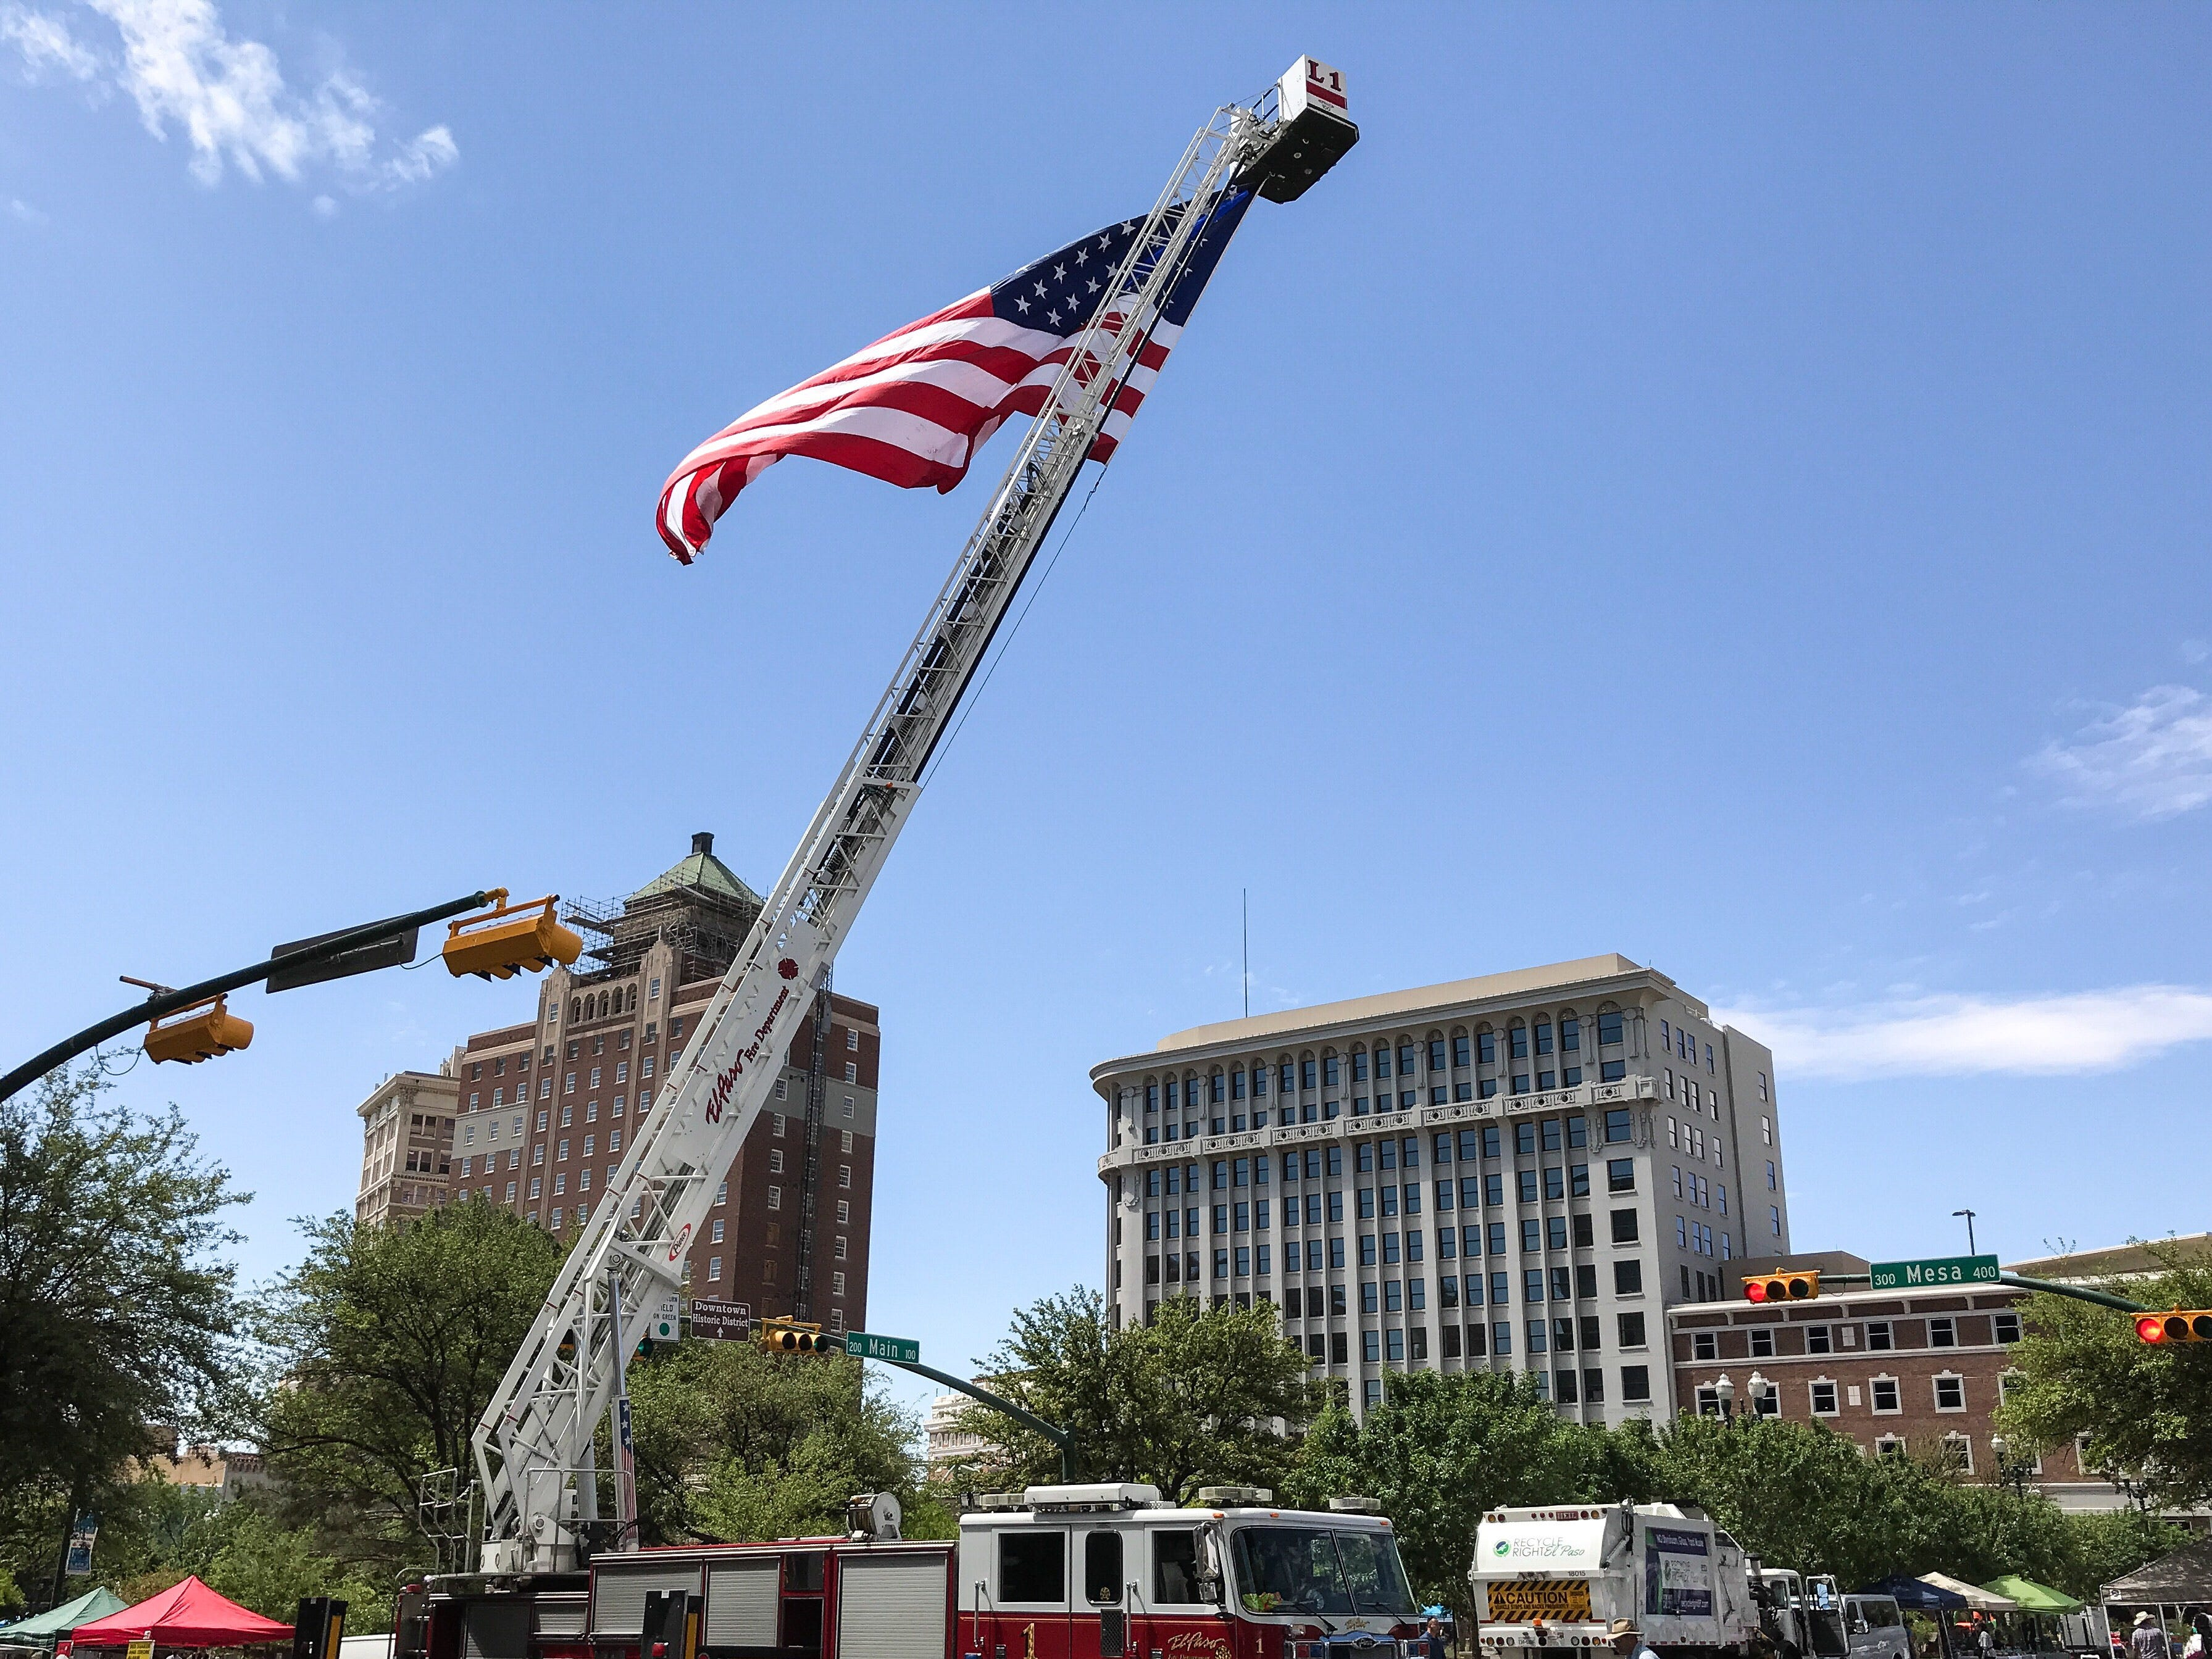 A U.S. flag flew over Earth Day celebrations Saturday, April 20, 2019, in San Jacinto Plaza. The city of El Paso's Environmental Services Department held the celebration, which offered environmental lessons and family fun.